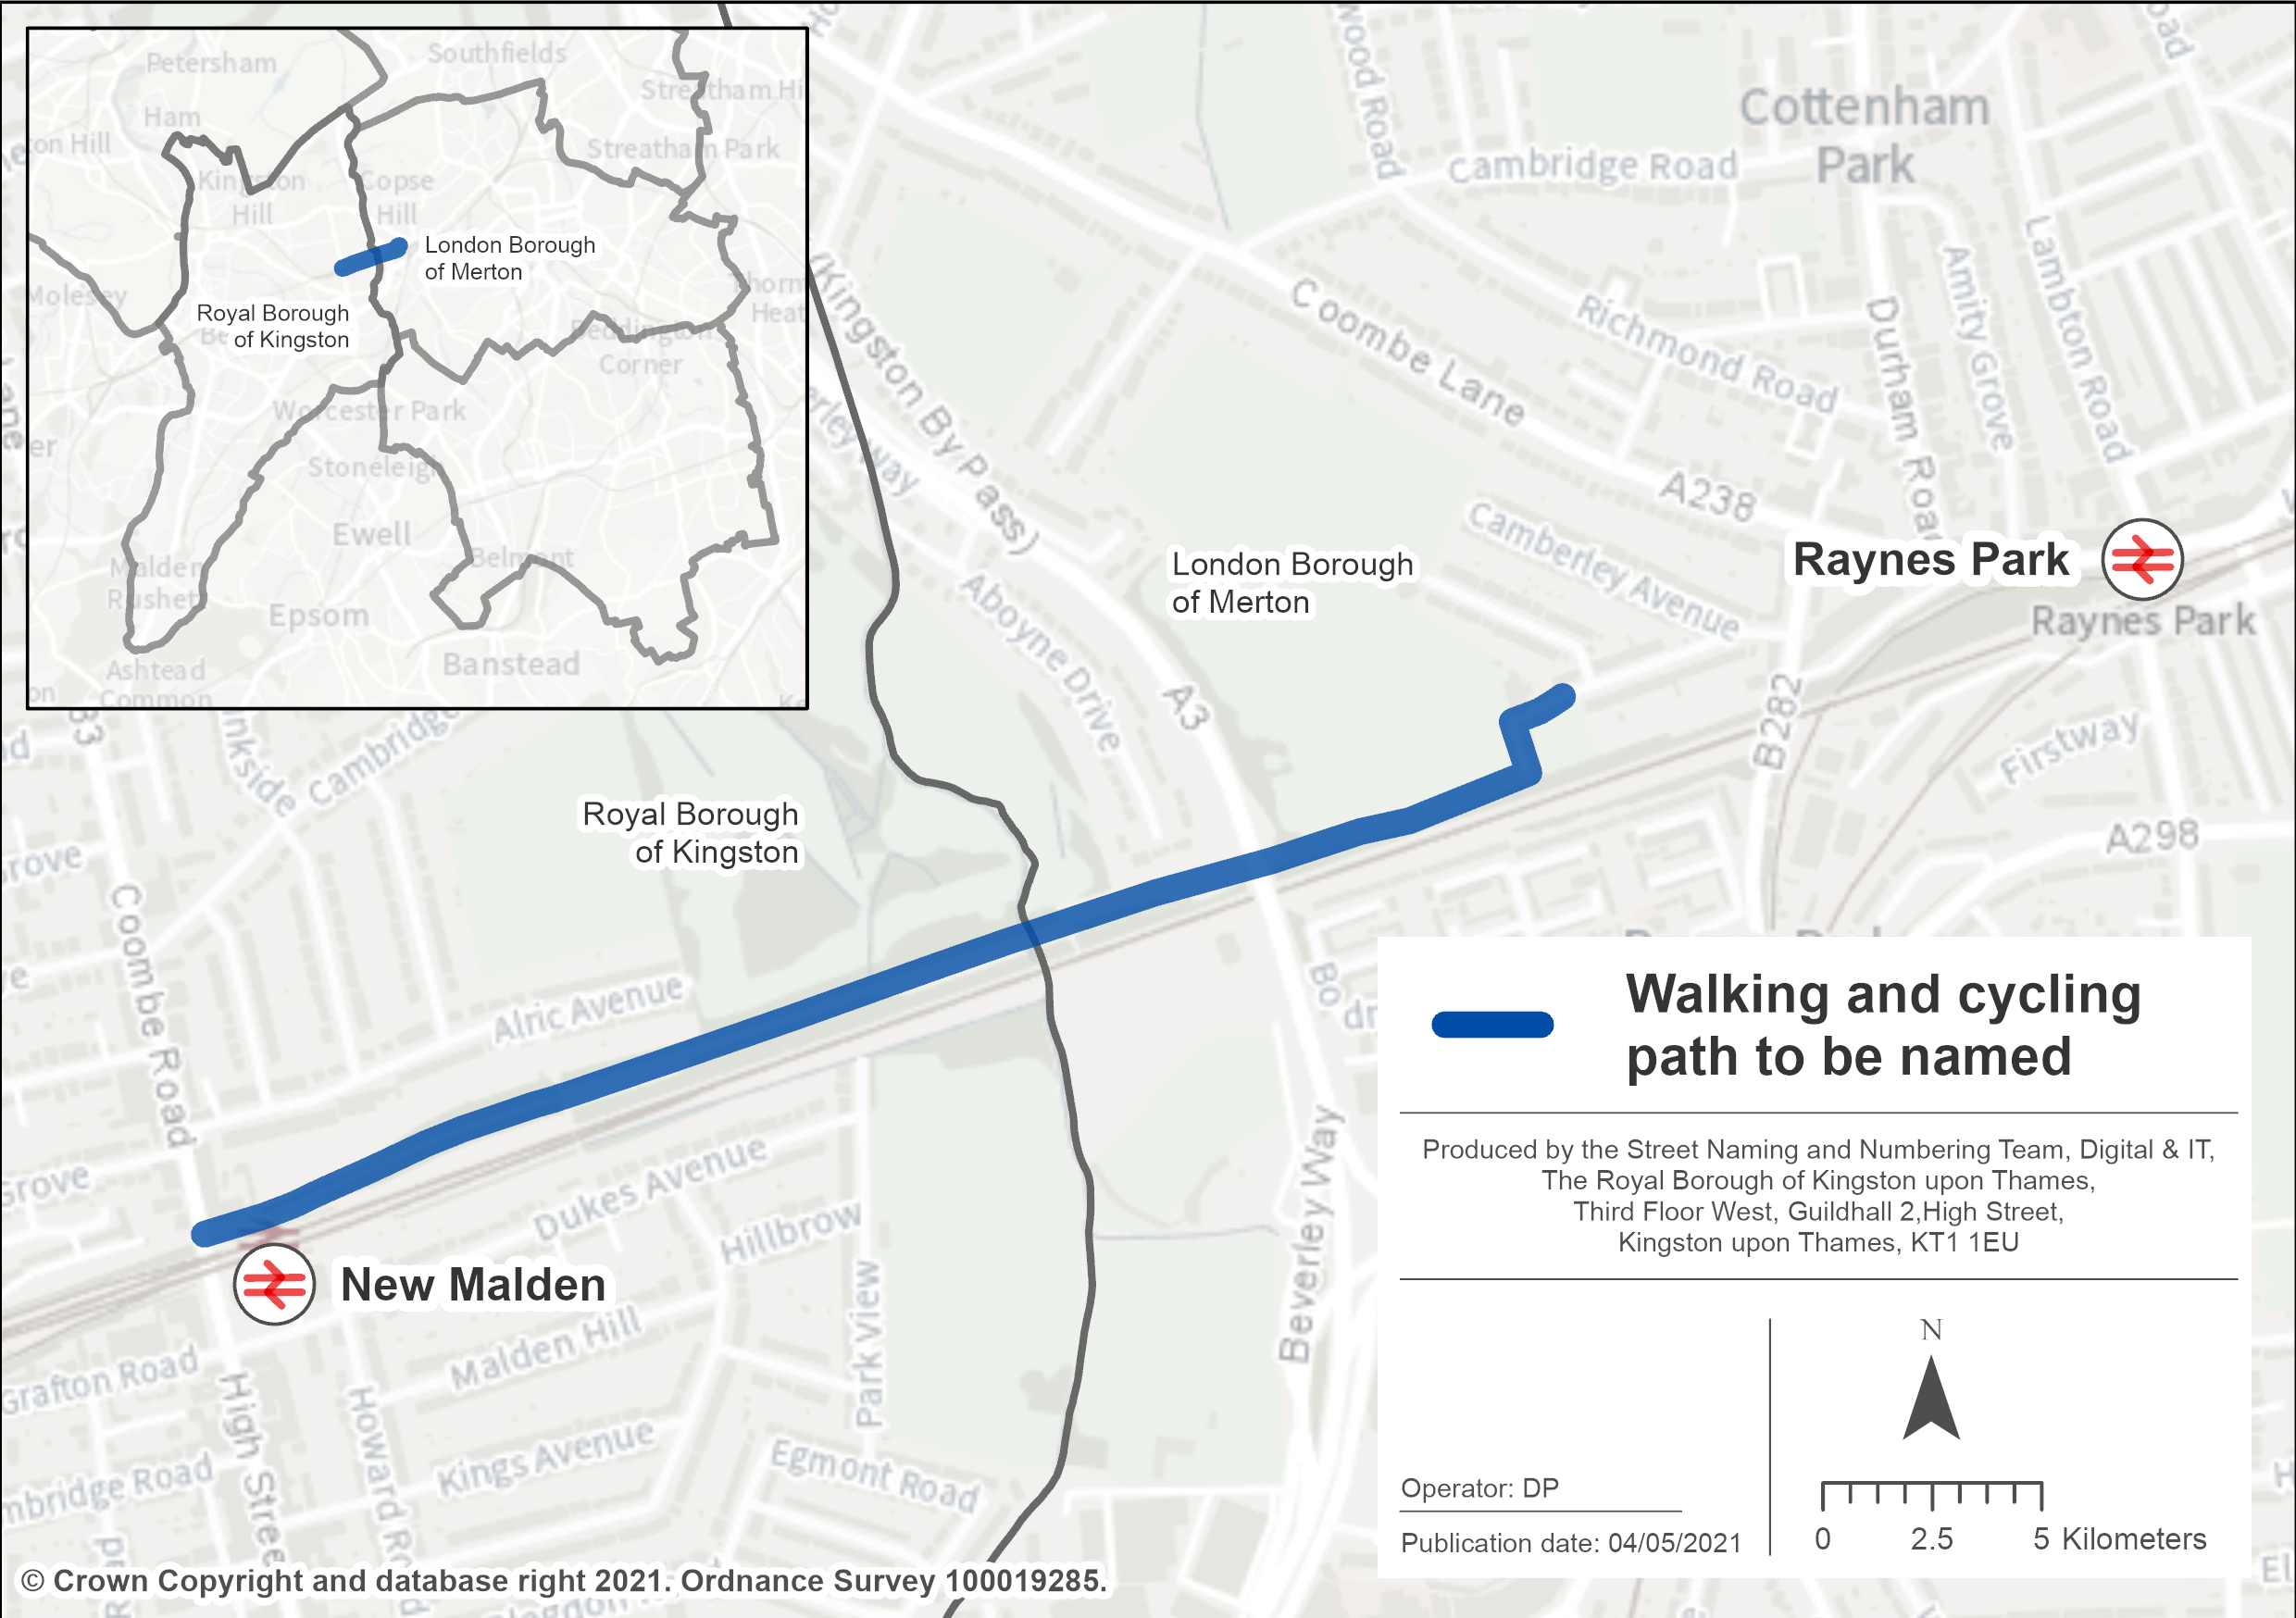 Help name the New Malden to Raynes Park walking and cycling route